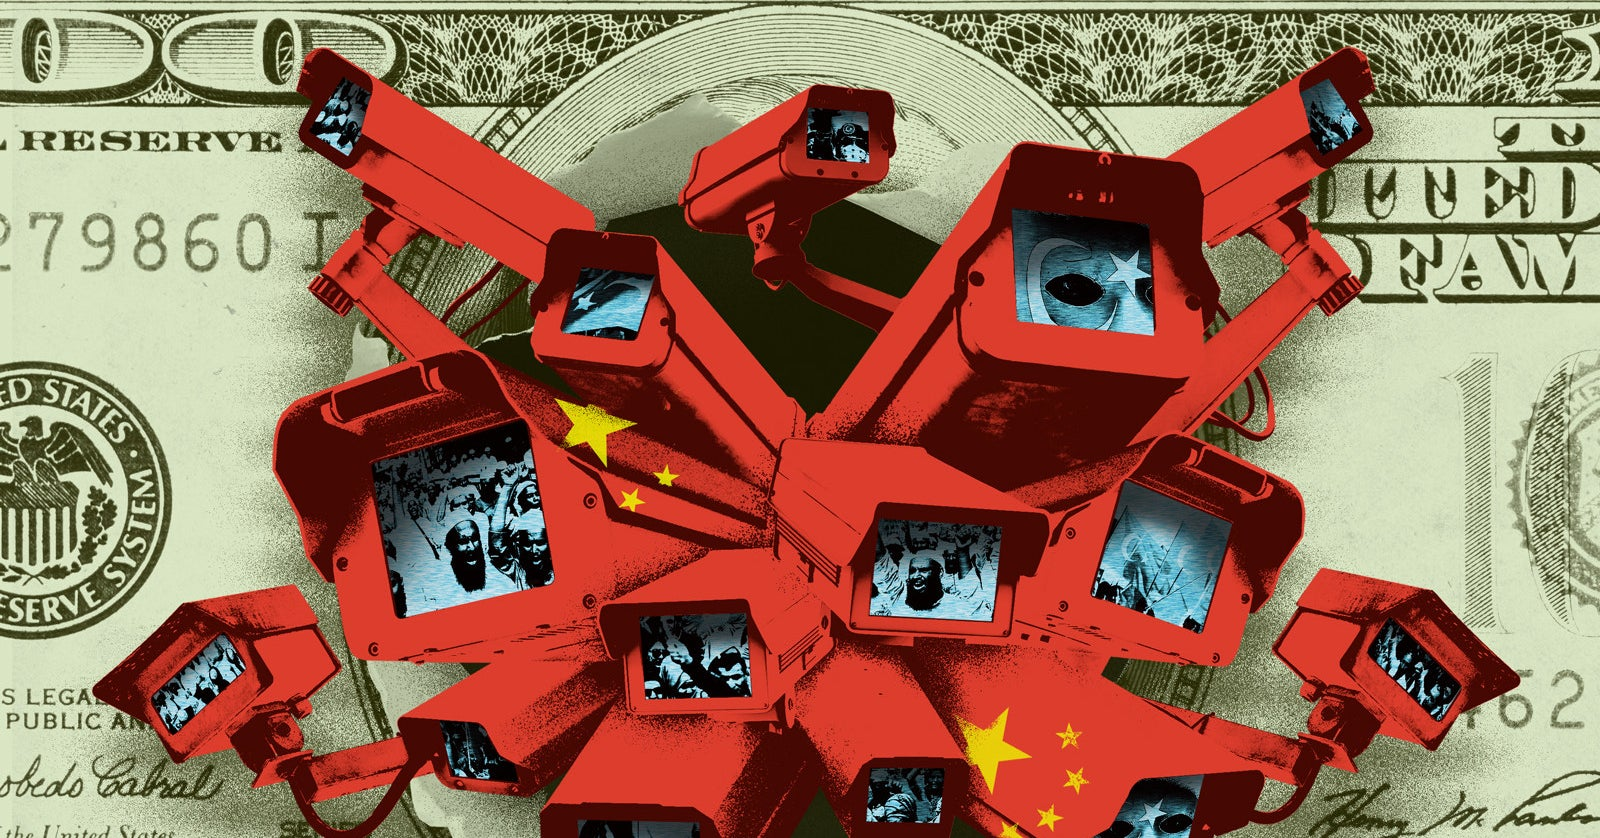 US Universities And Retirees Are Funding The Technology Behind China's Surveillance State